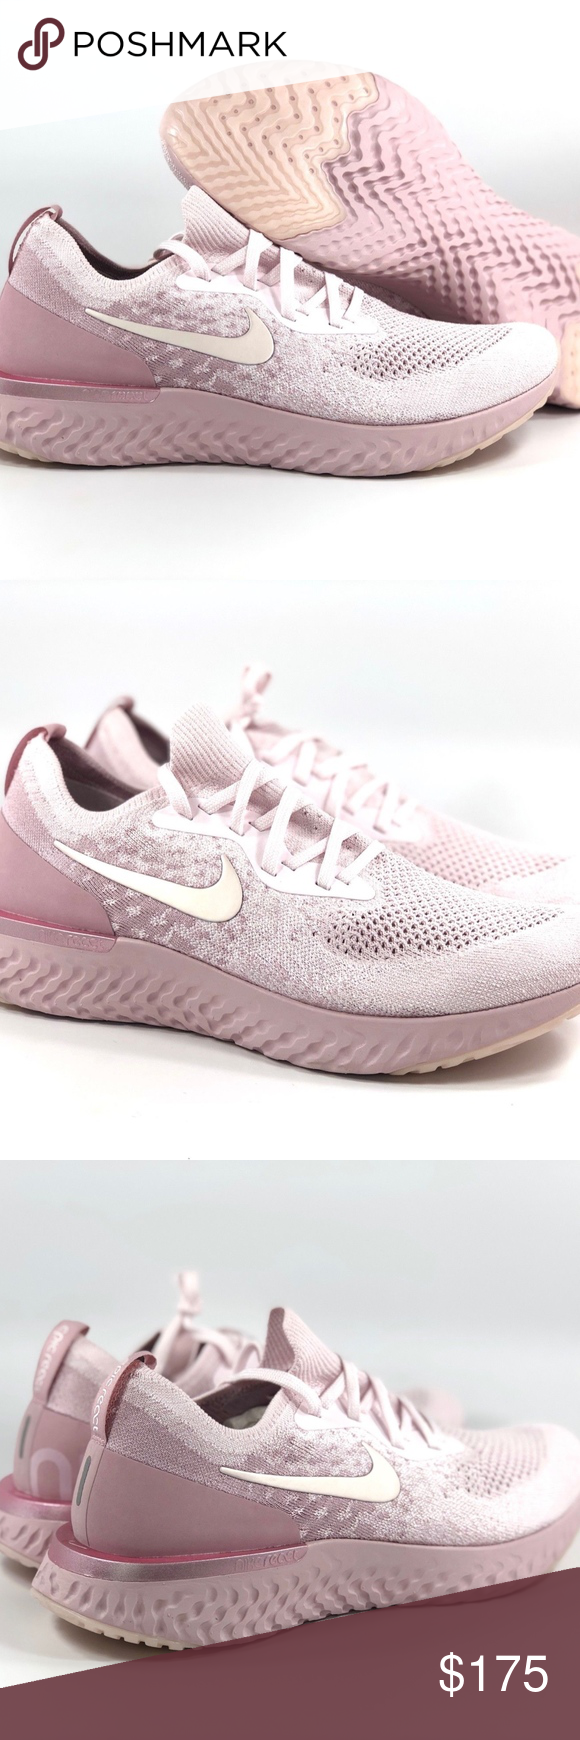 ea1332d87cebd Nike Epic React Flyknit Pearl Pink Barely Rose Nike Epic React Flyknit  Pearl Pink Barely Rose